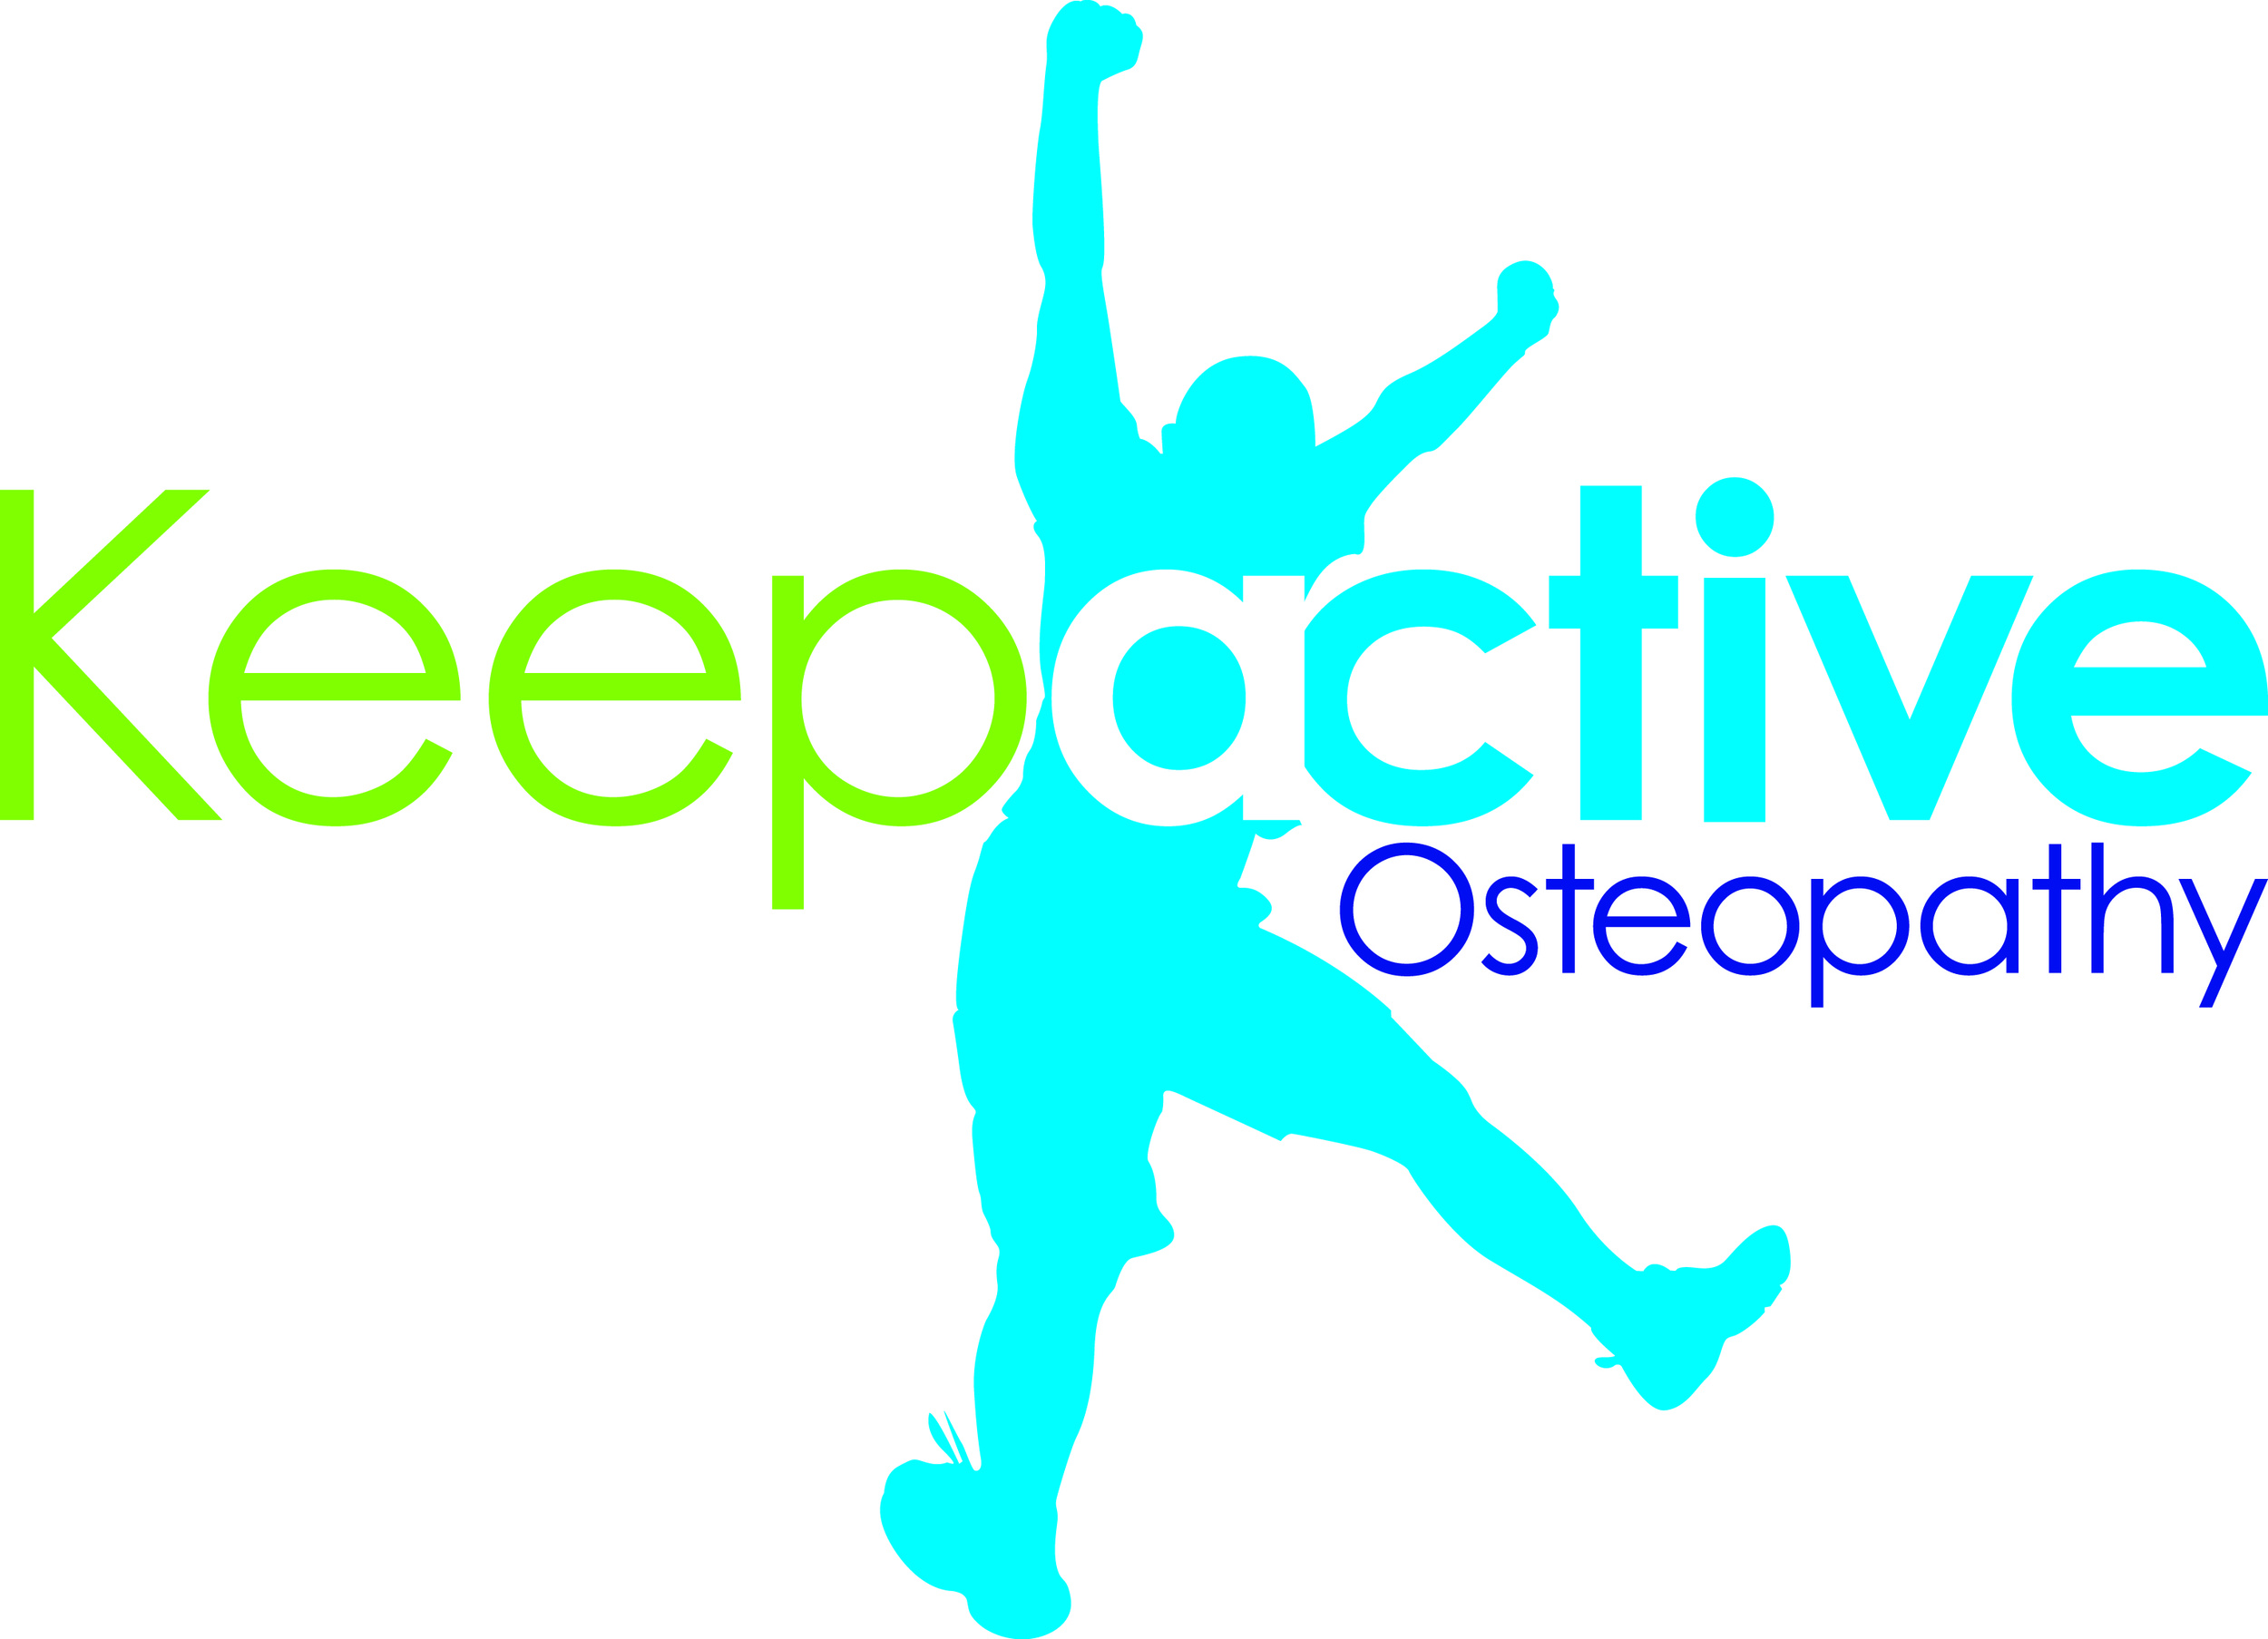 Keep_Active_Logo.jpg